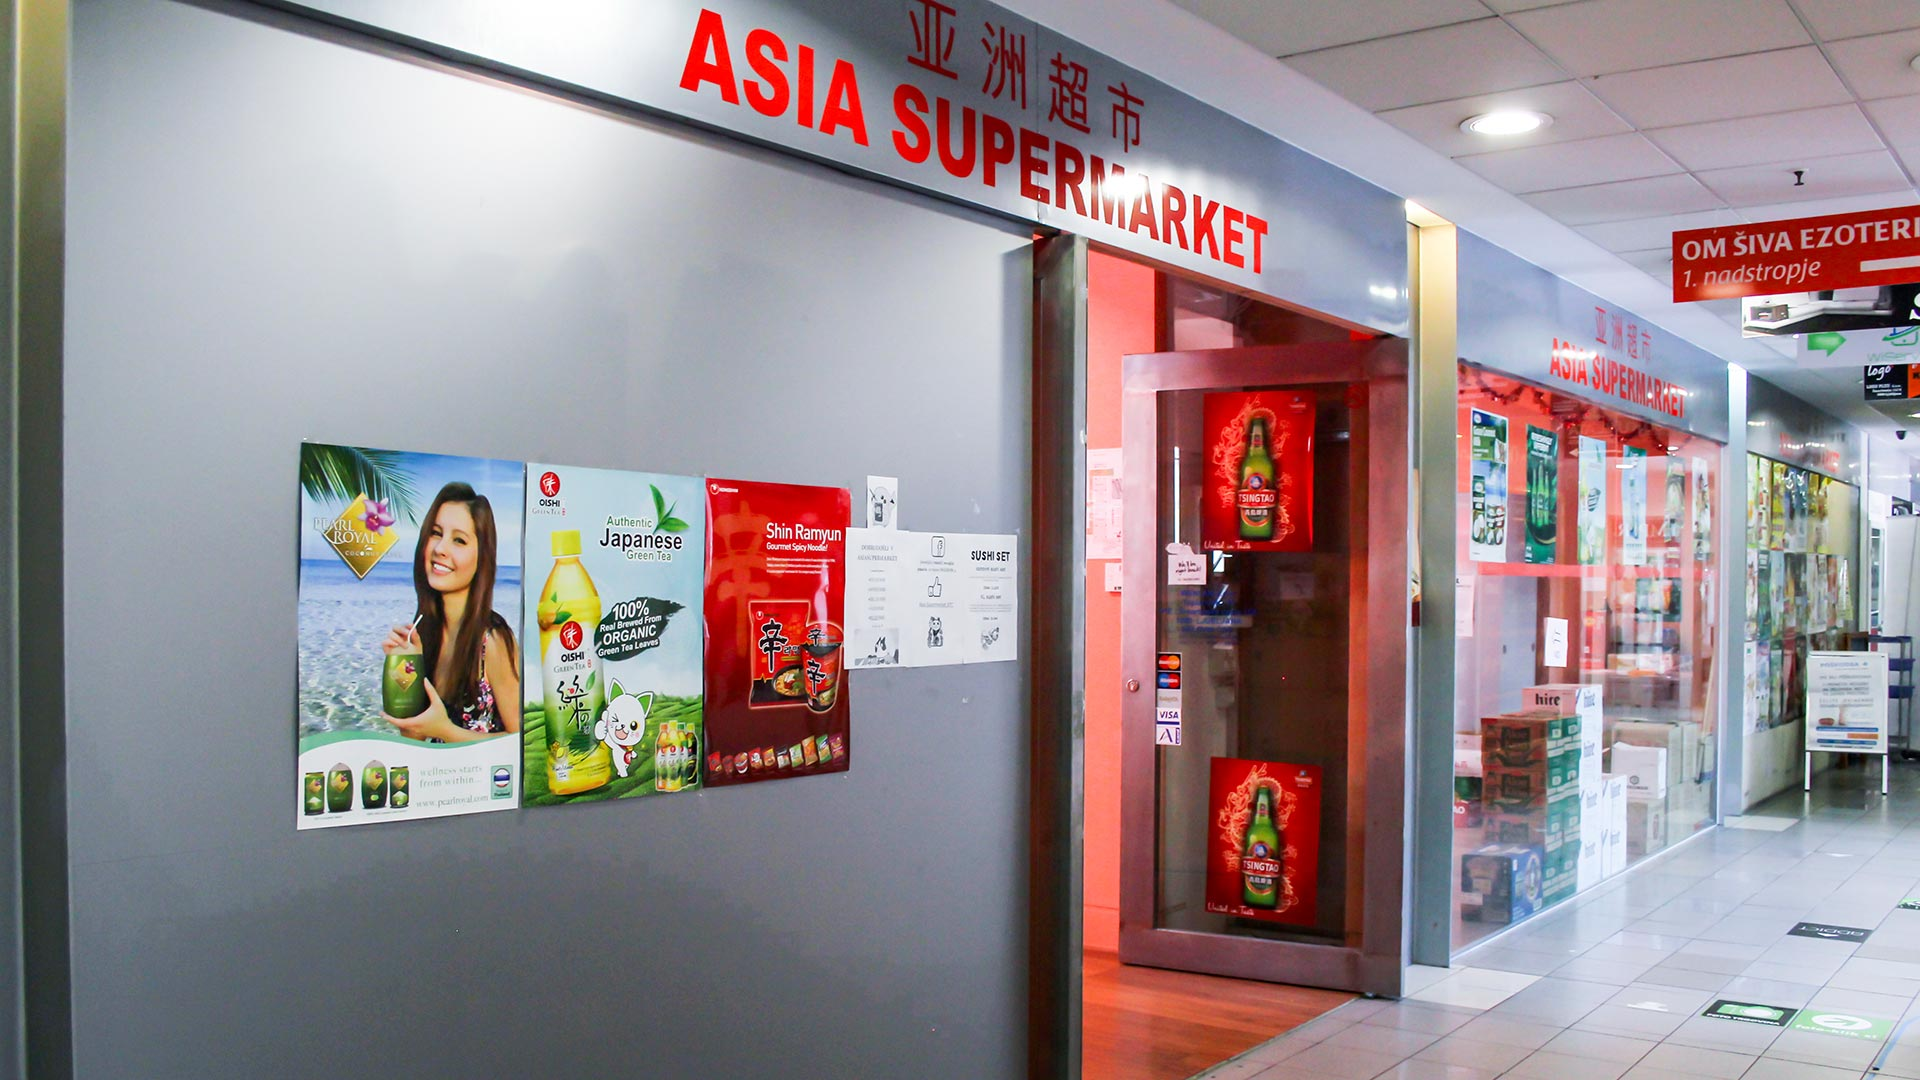 1152-hero-Asia_Supermarket-zunaj